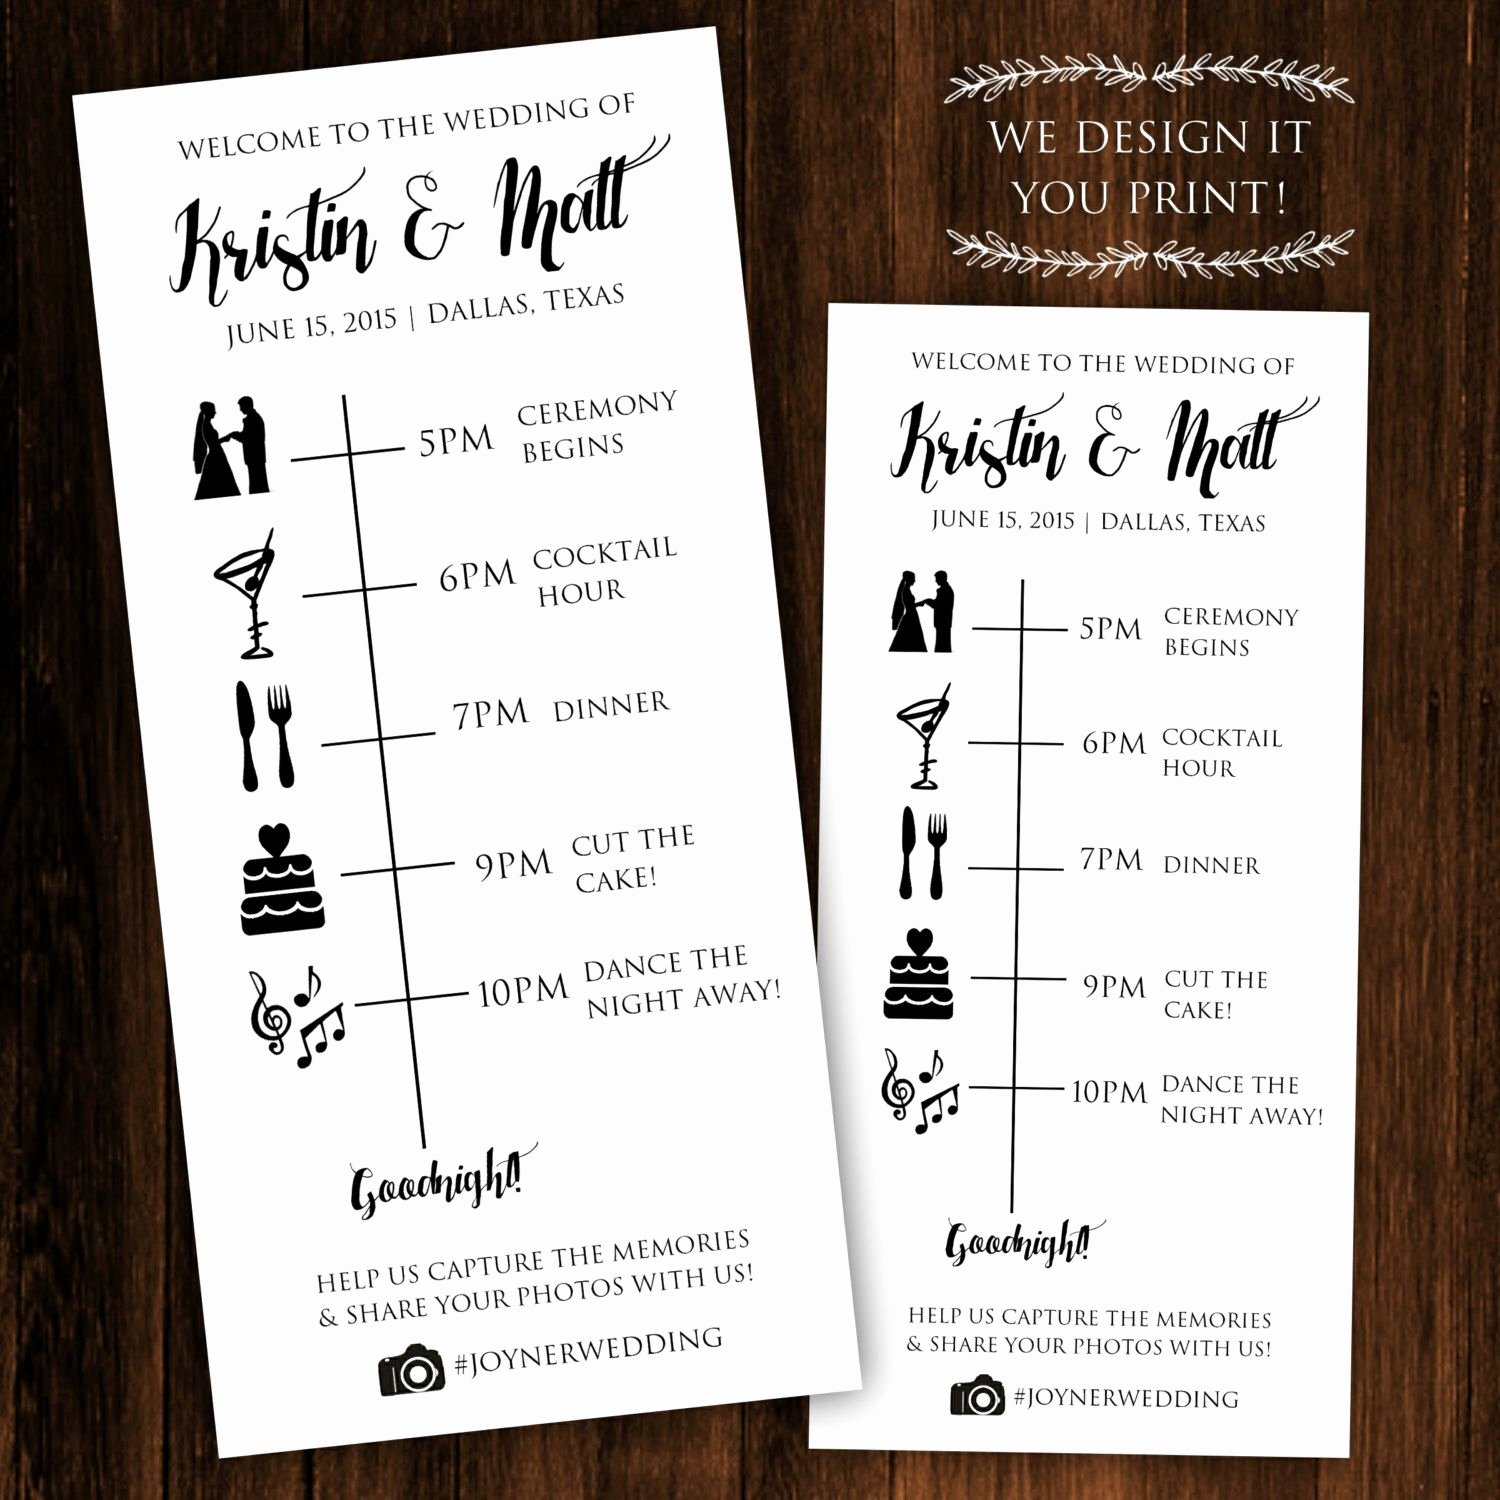 Free Wedding Itinerary Template Best Of Pin by Amanda Seibert On the Wedddding